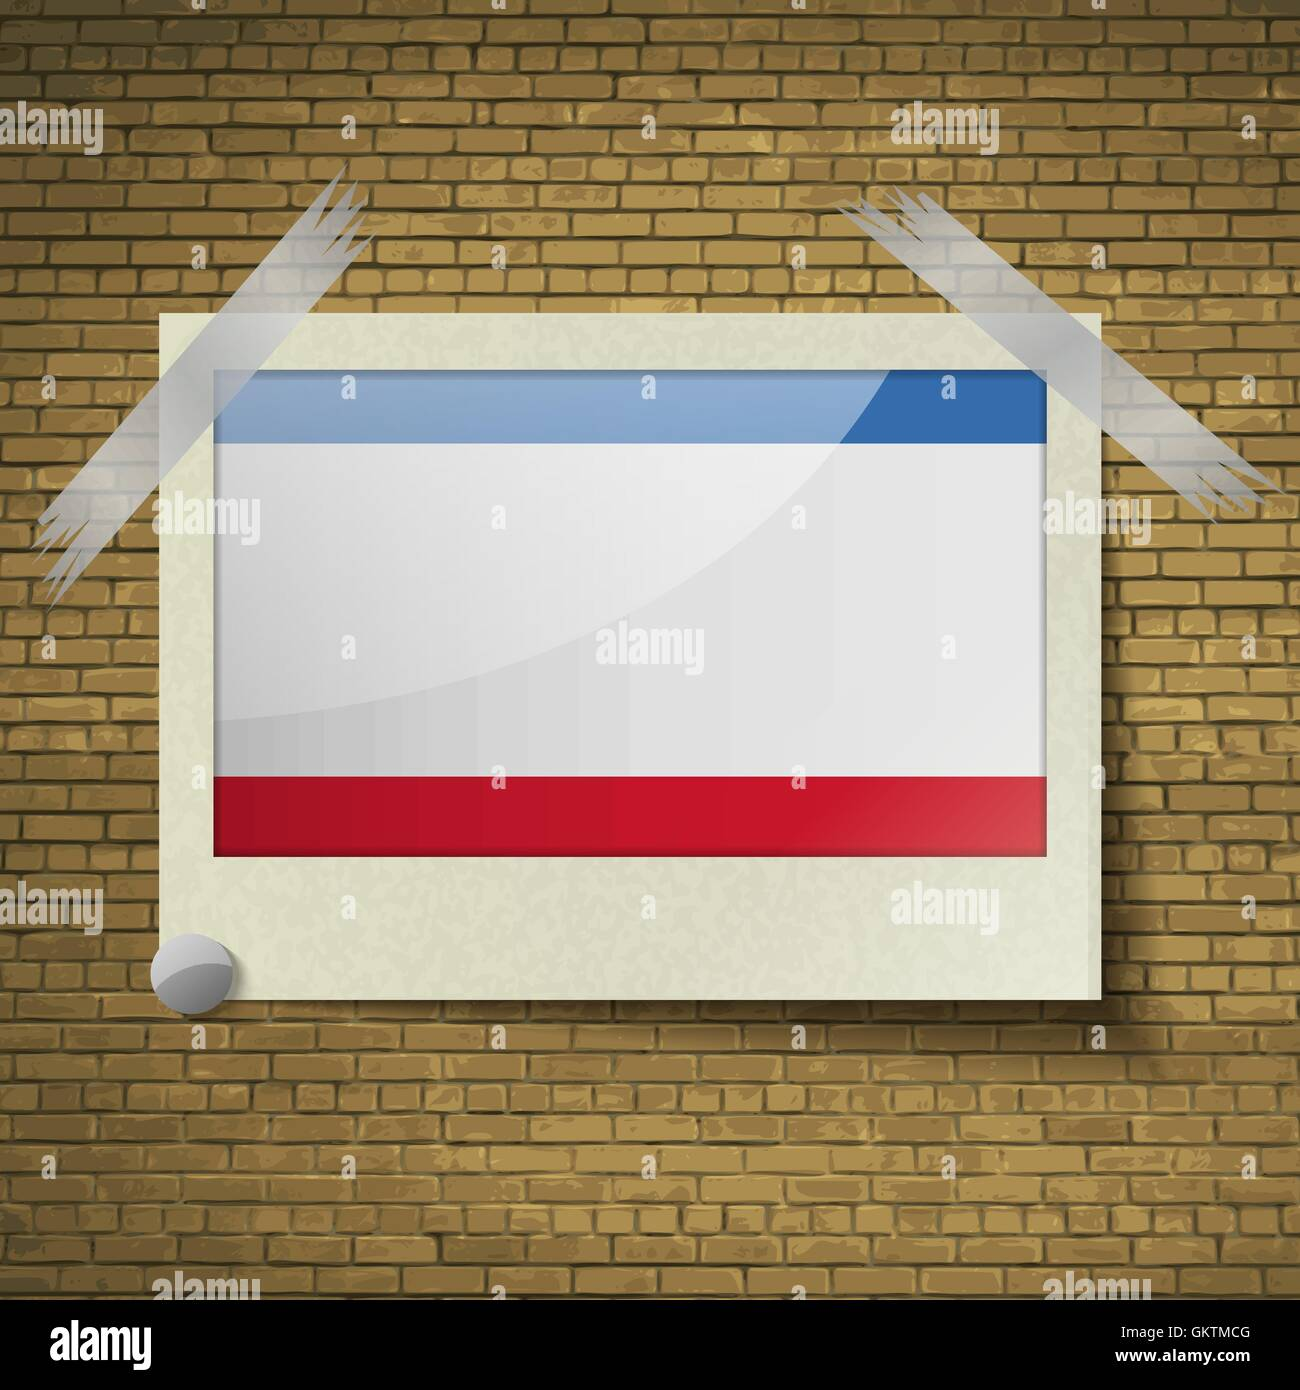 Flags Crimea at frame on a brick background. Vector - Stock Image